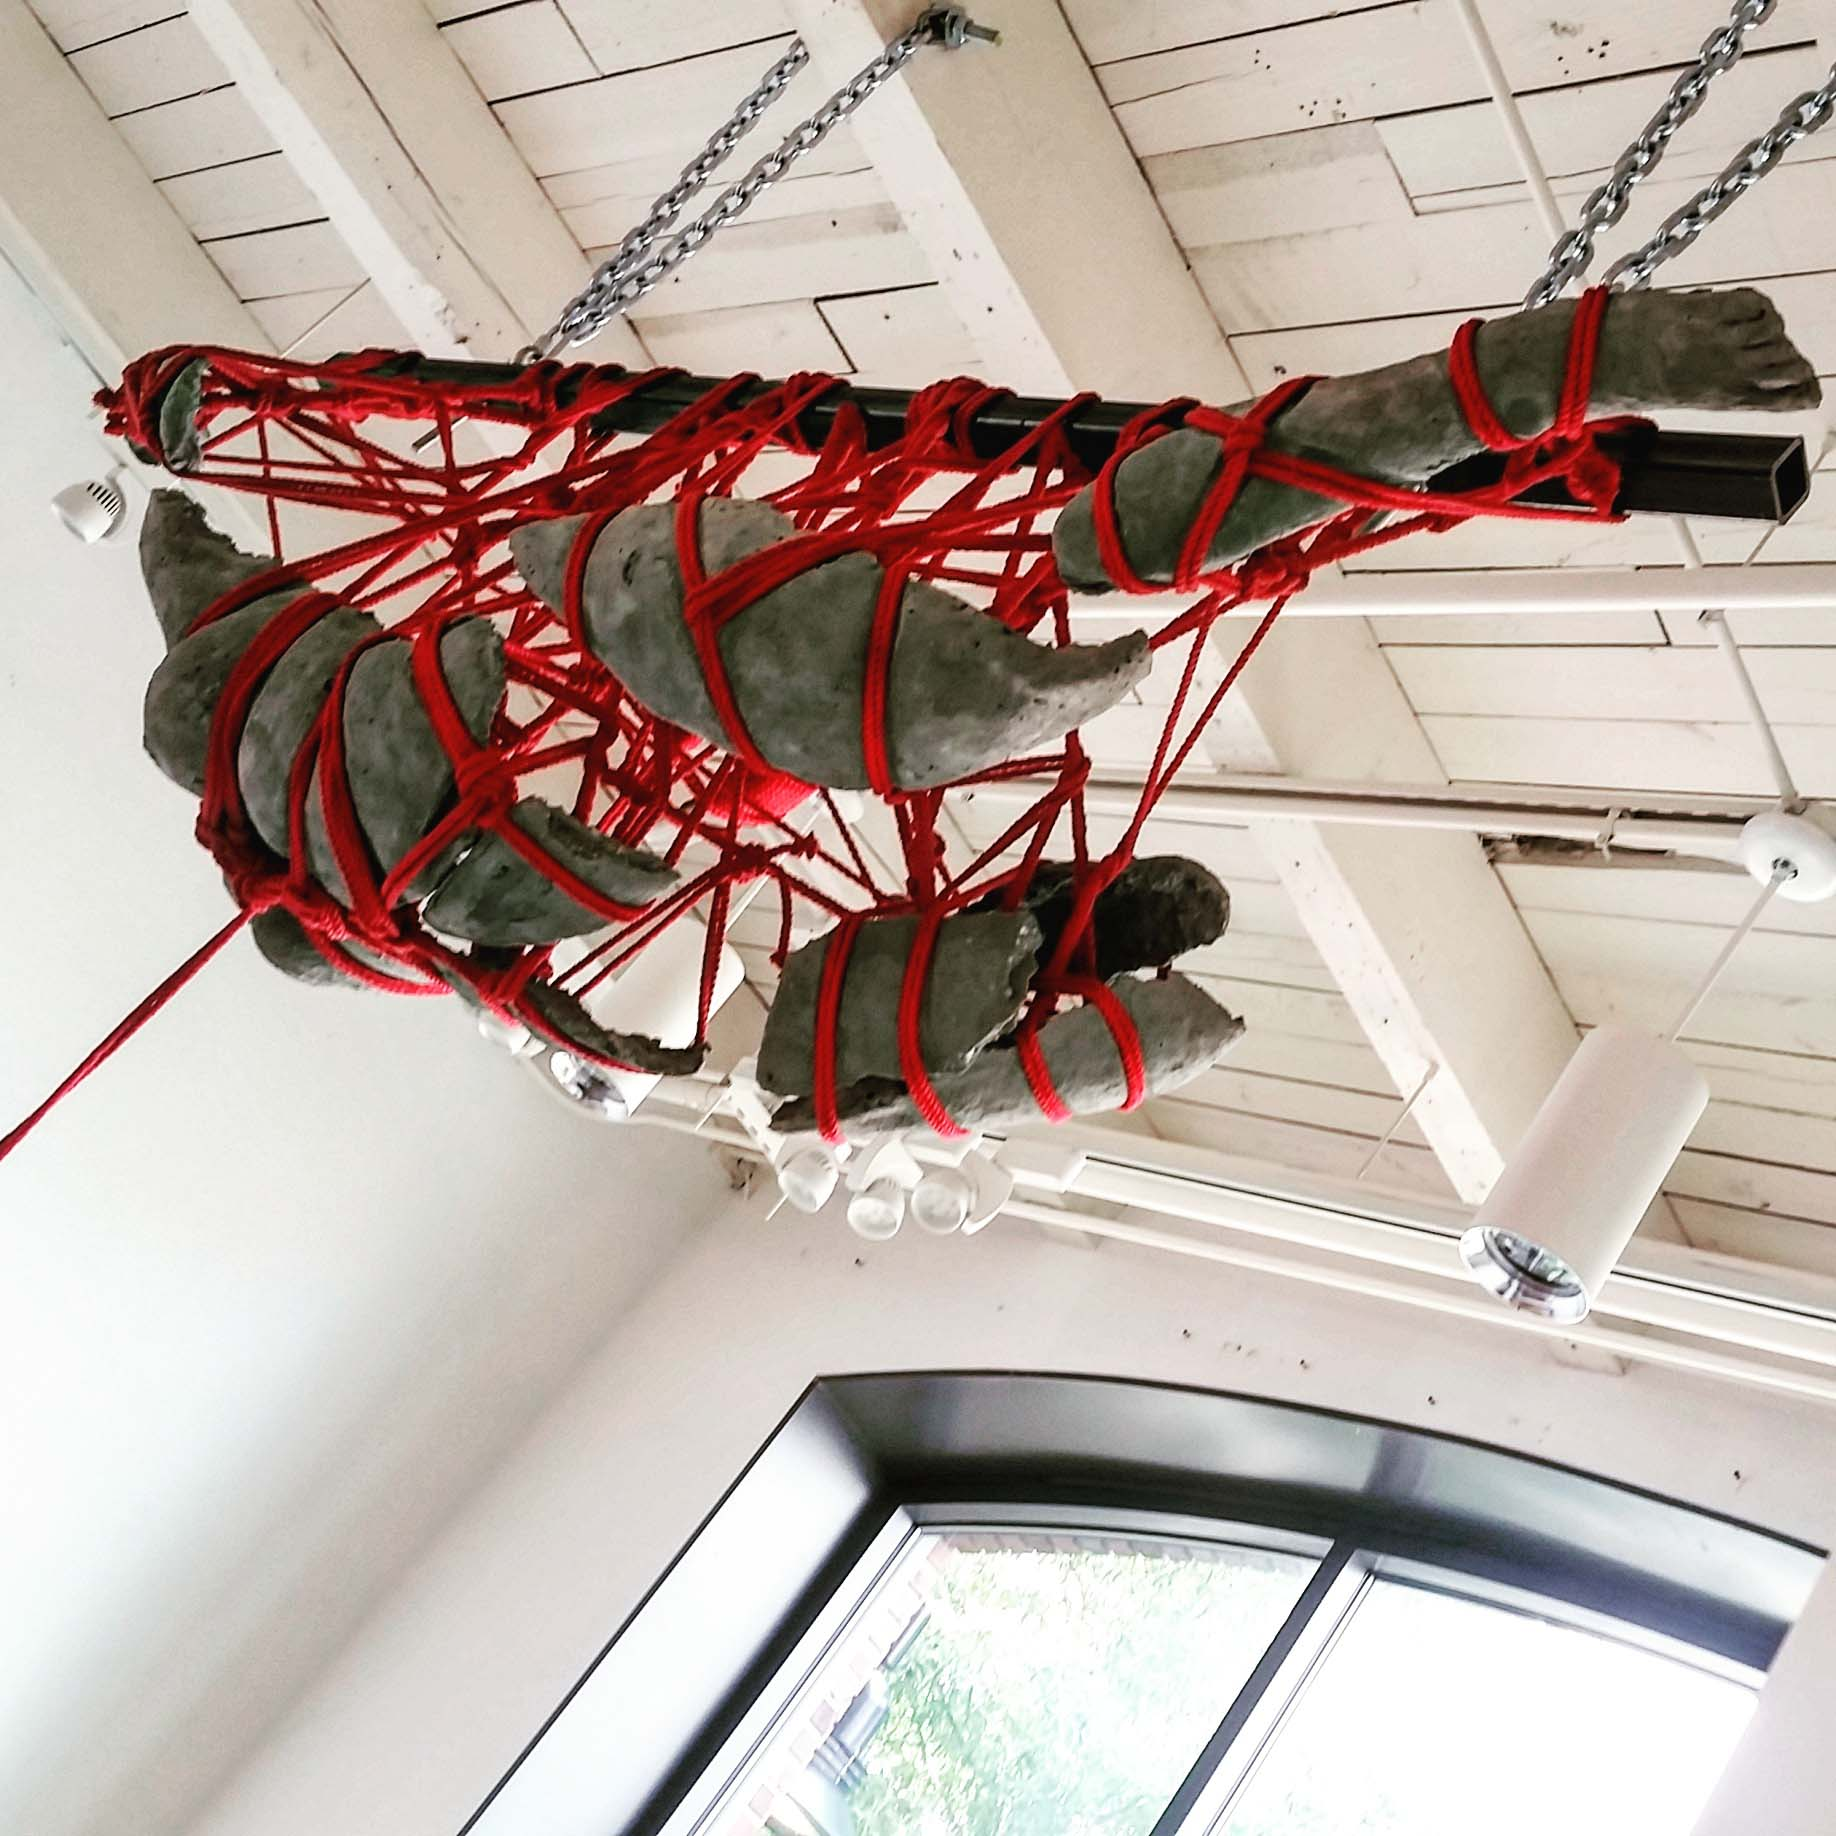 Female form, full body cast, suspended 25ft in the air in a kinbaku rope style with red rope.